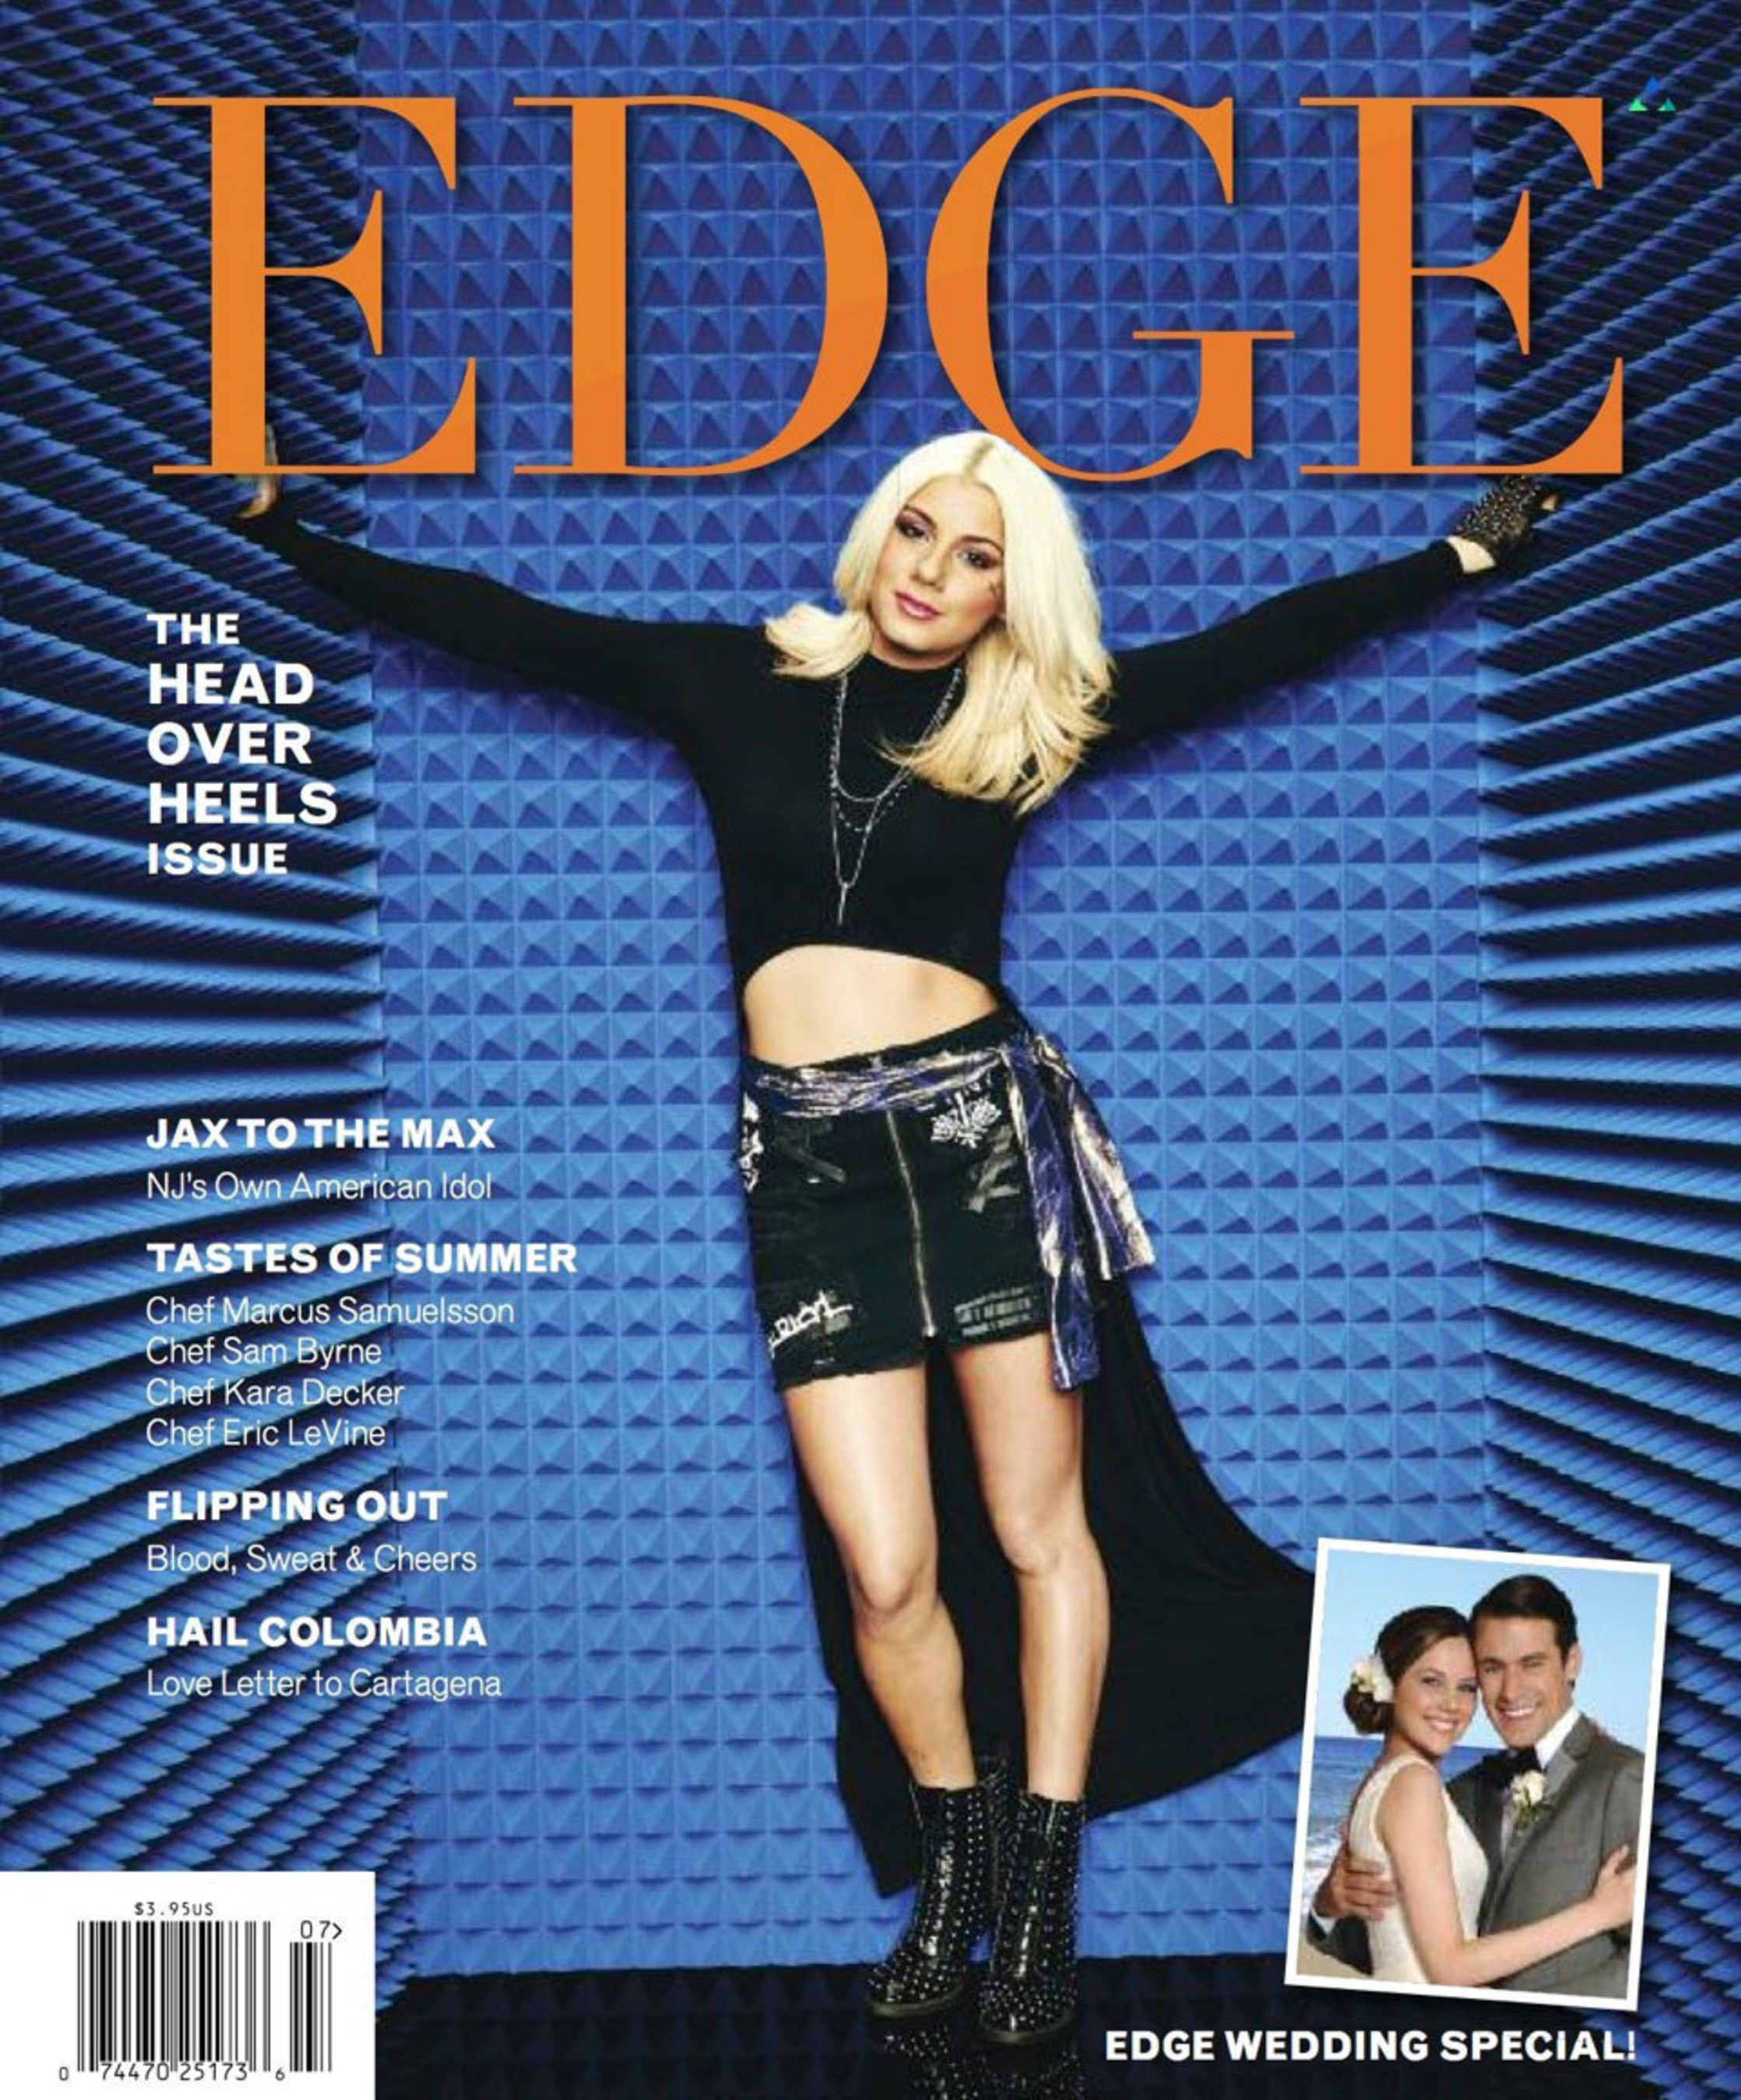 "American Idol Star Jax Earns Her First Cover on EDGE Magazine Leading New Jersey lifestyle publication should be first of many for New Brunswick native. Elizabeth, NJ - July 14, 2015) Millions of television viewers will remember Spring 2015 as the time they fell head over heels for a Jersey Girl named Jax. Her performances on American Idol propelled her to the program's ""final three""- the highest a New Jersey performer had ever finished in Idol's history. Summer 2015 marks Jax's first magazine cover, the Head Over Heels issue of EDGE. For more on EDGE Magazine: www.EdgeMagOnline.com - Twitter @EDGEMagNJ - Facebook EDGE Magazine"